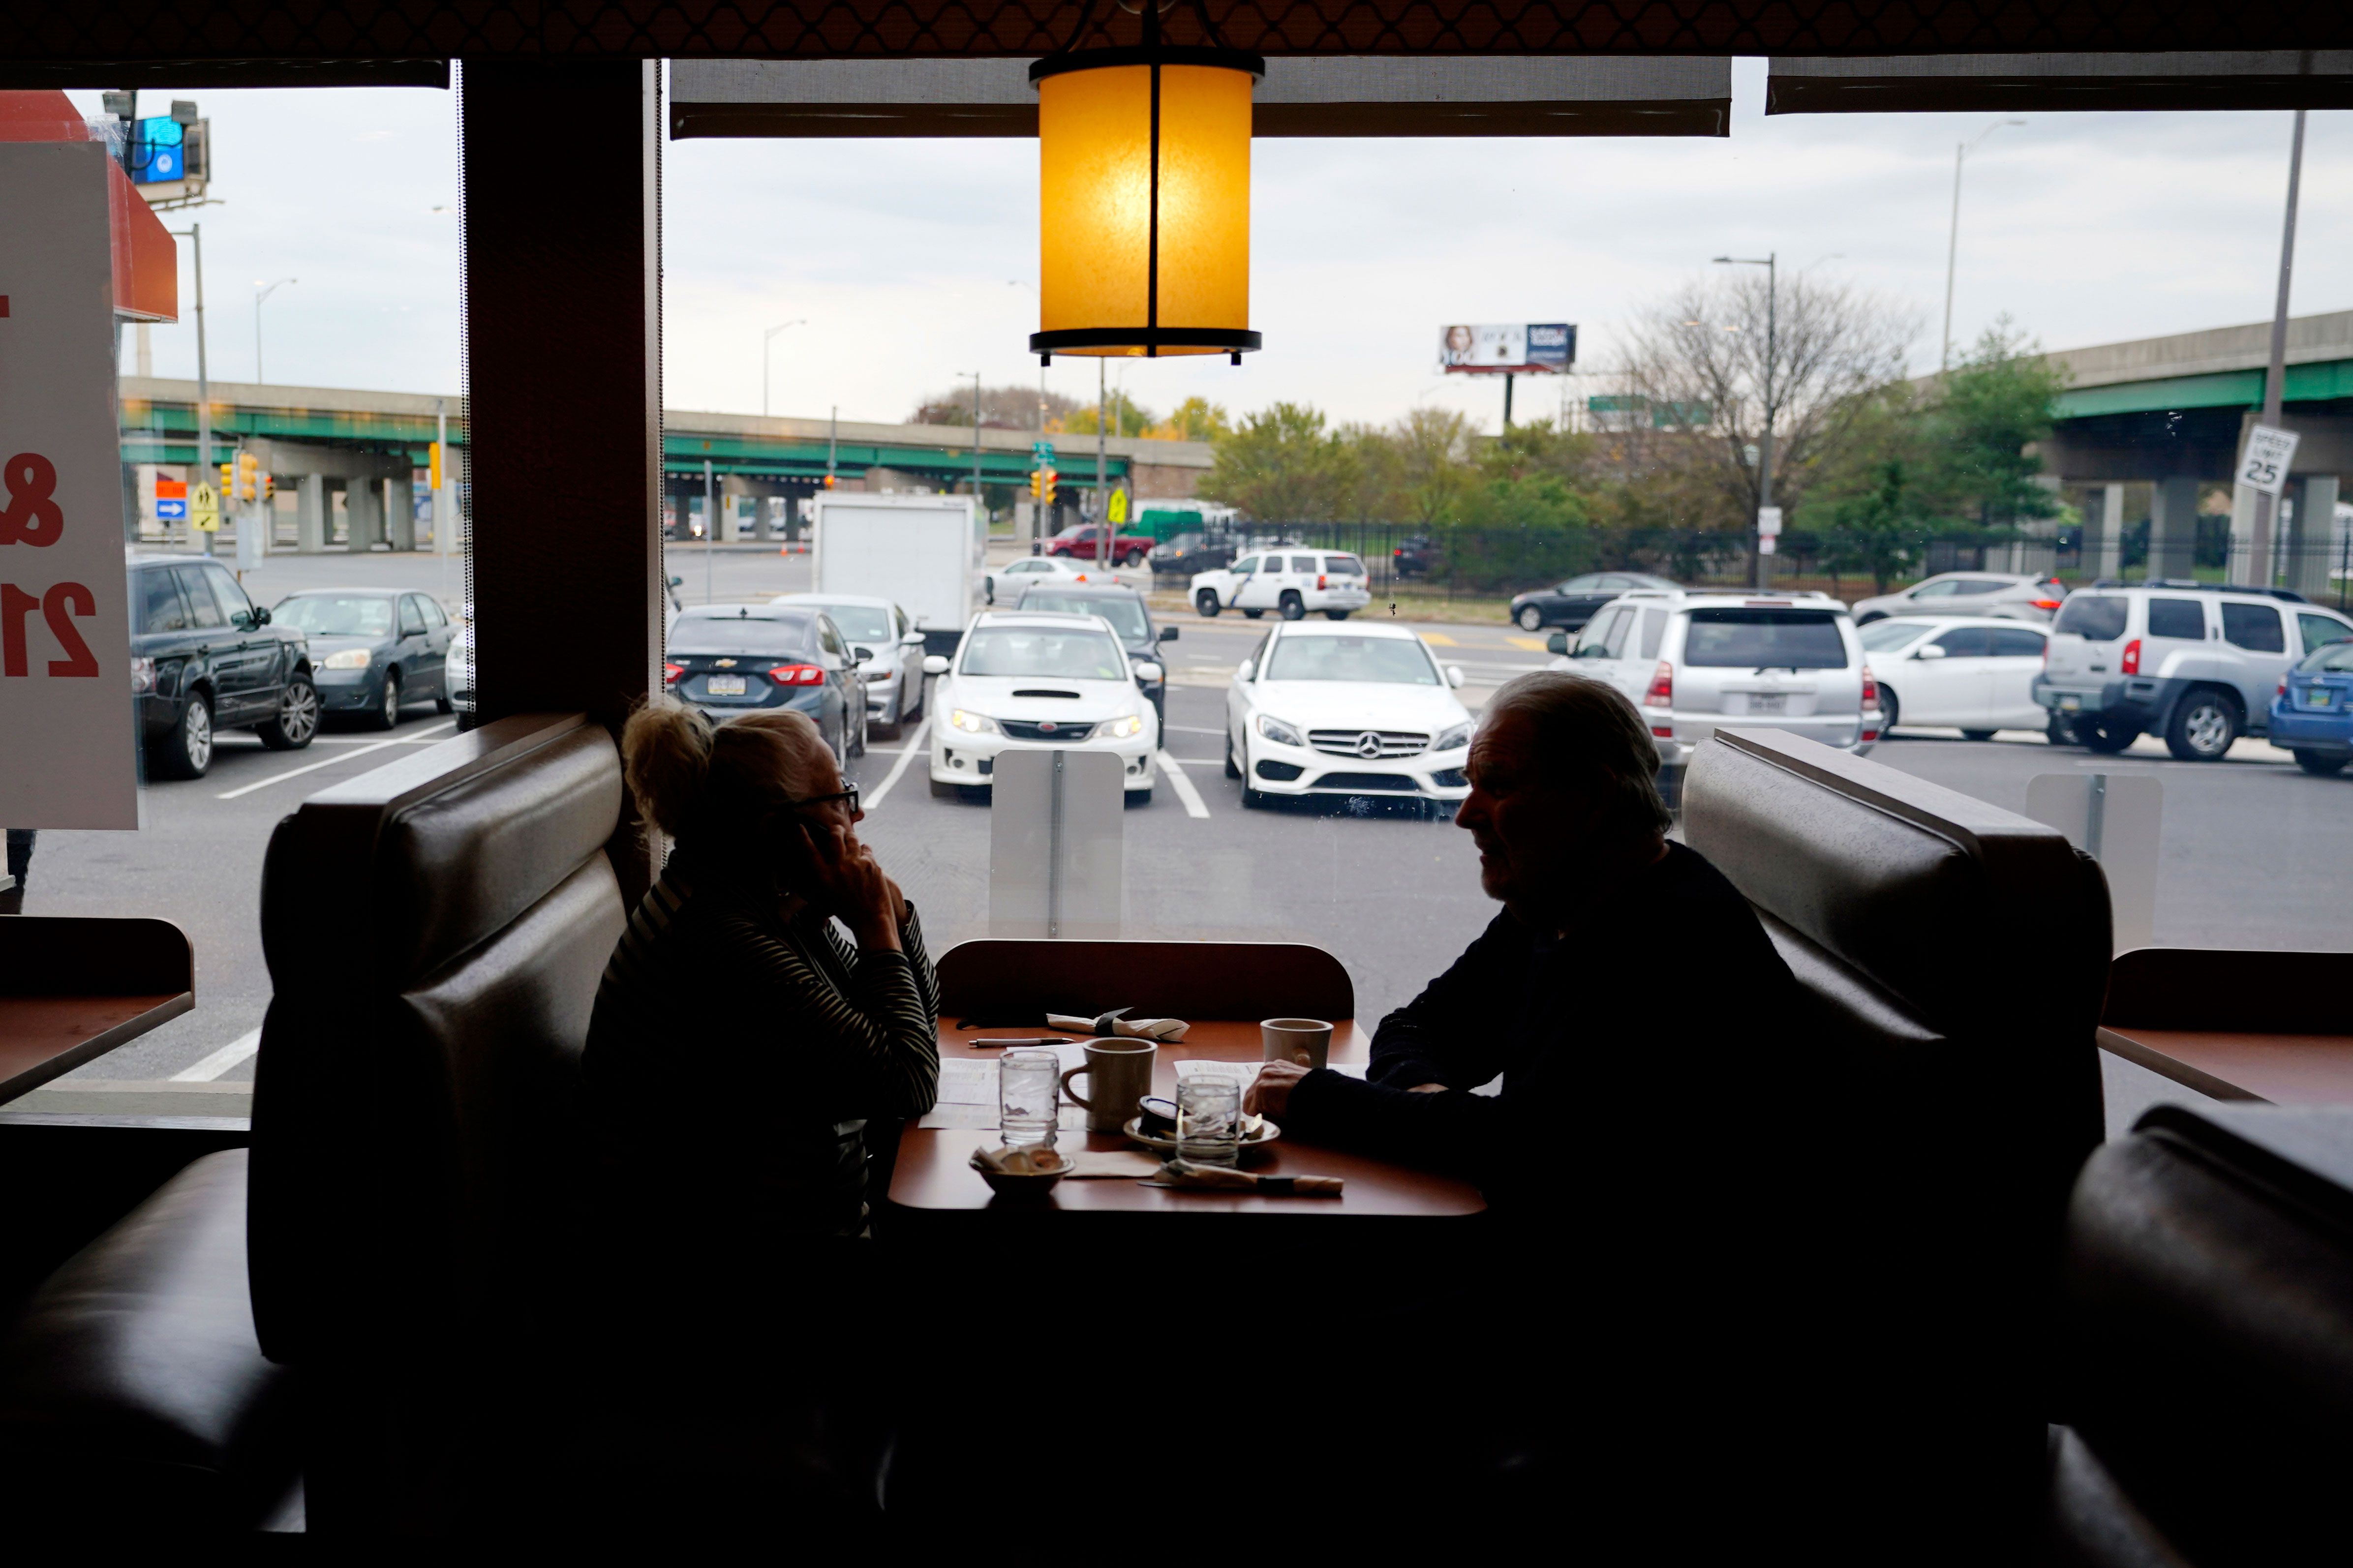 Customers sit in a booth at the Penrose Diner, on Tuesday, November 17, in south Philadelphia.